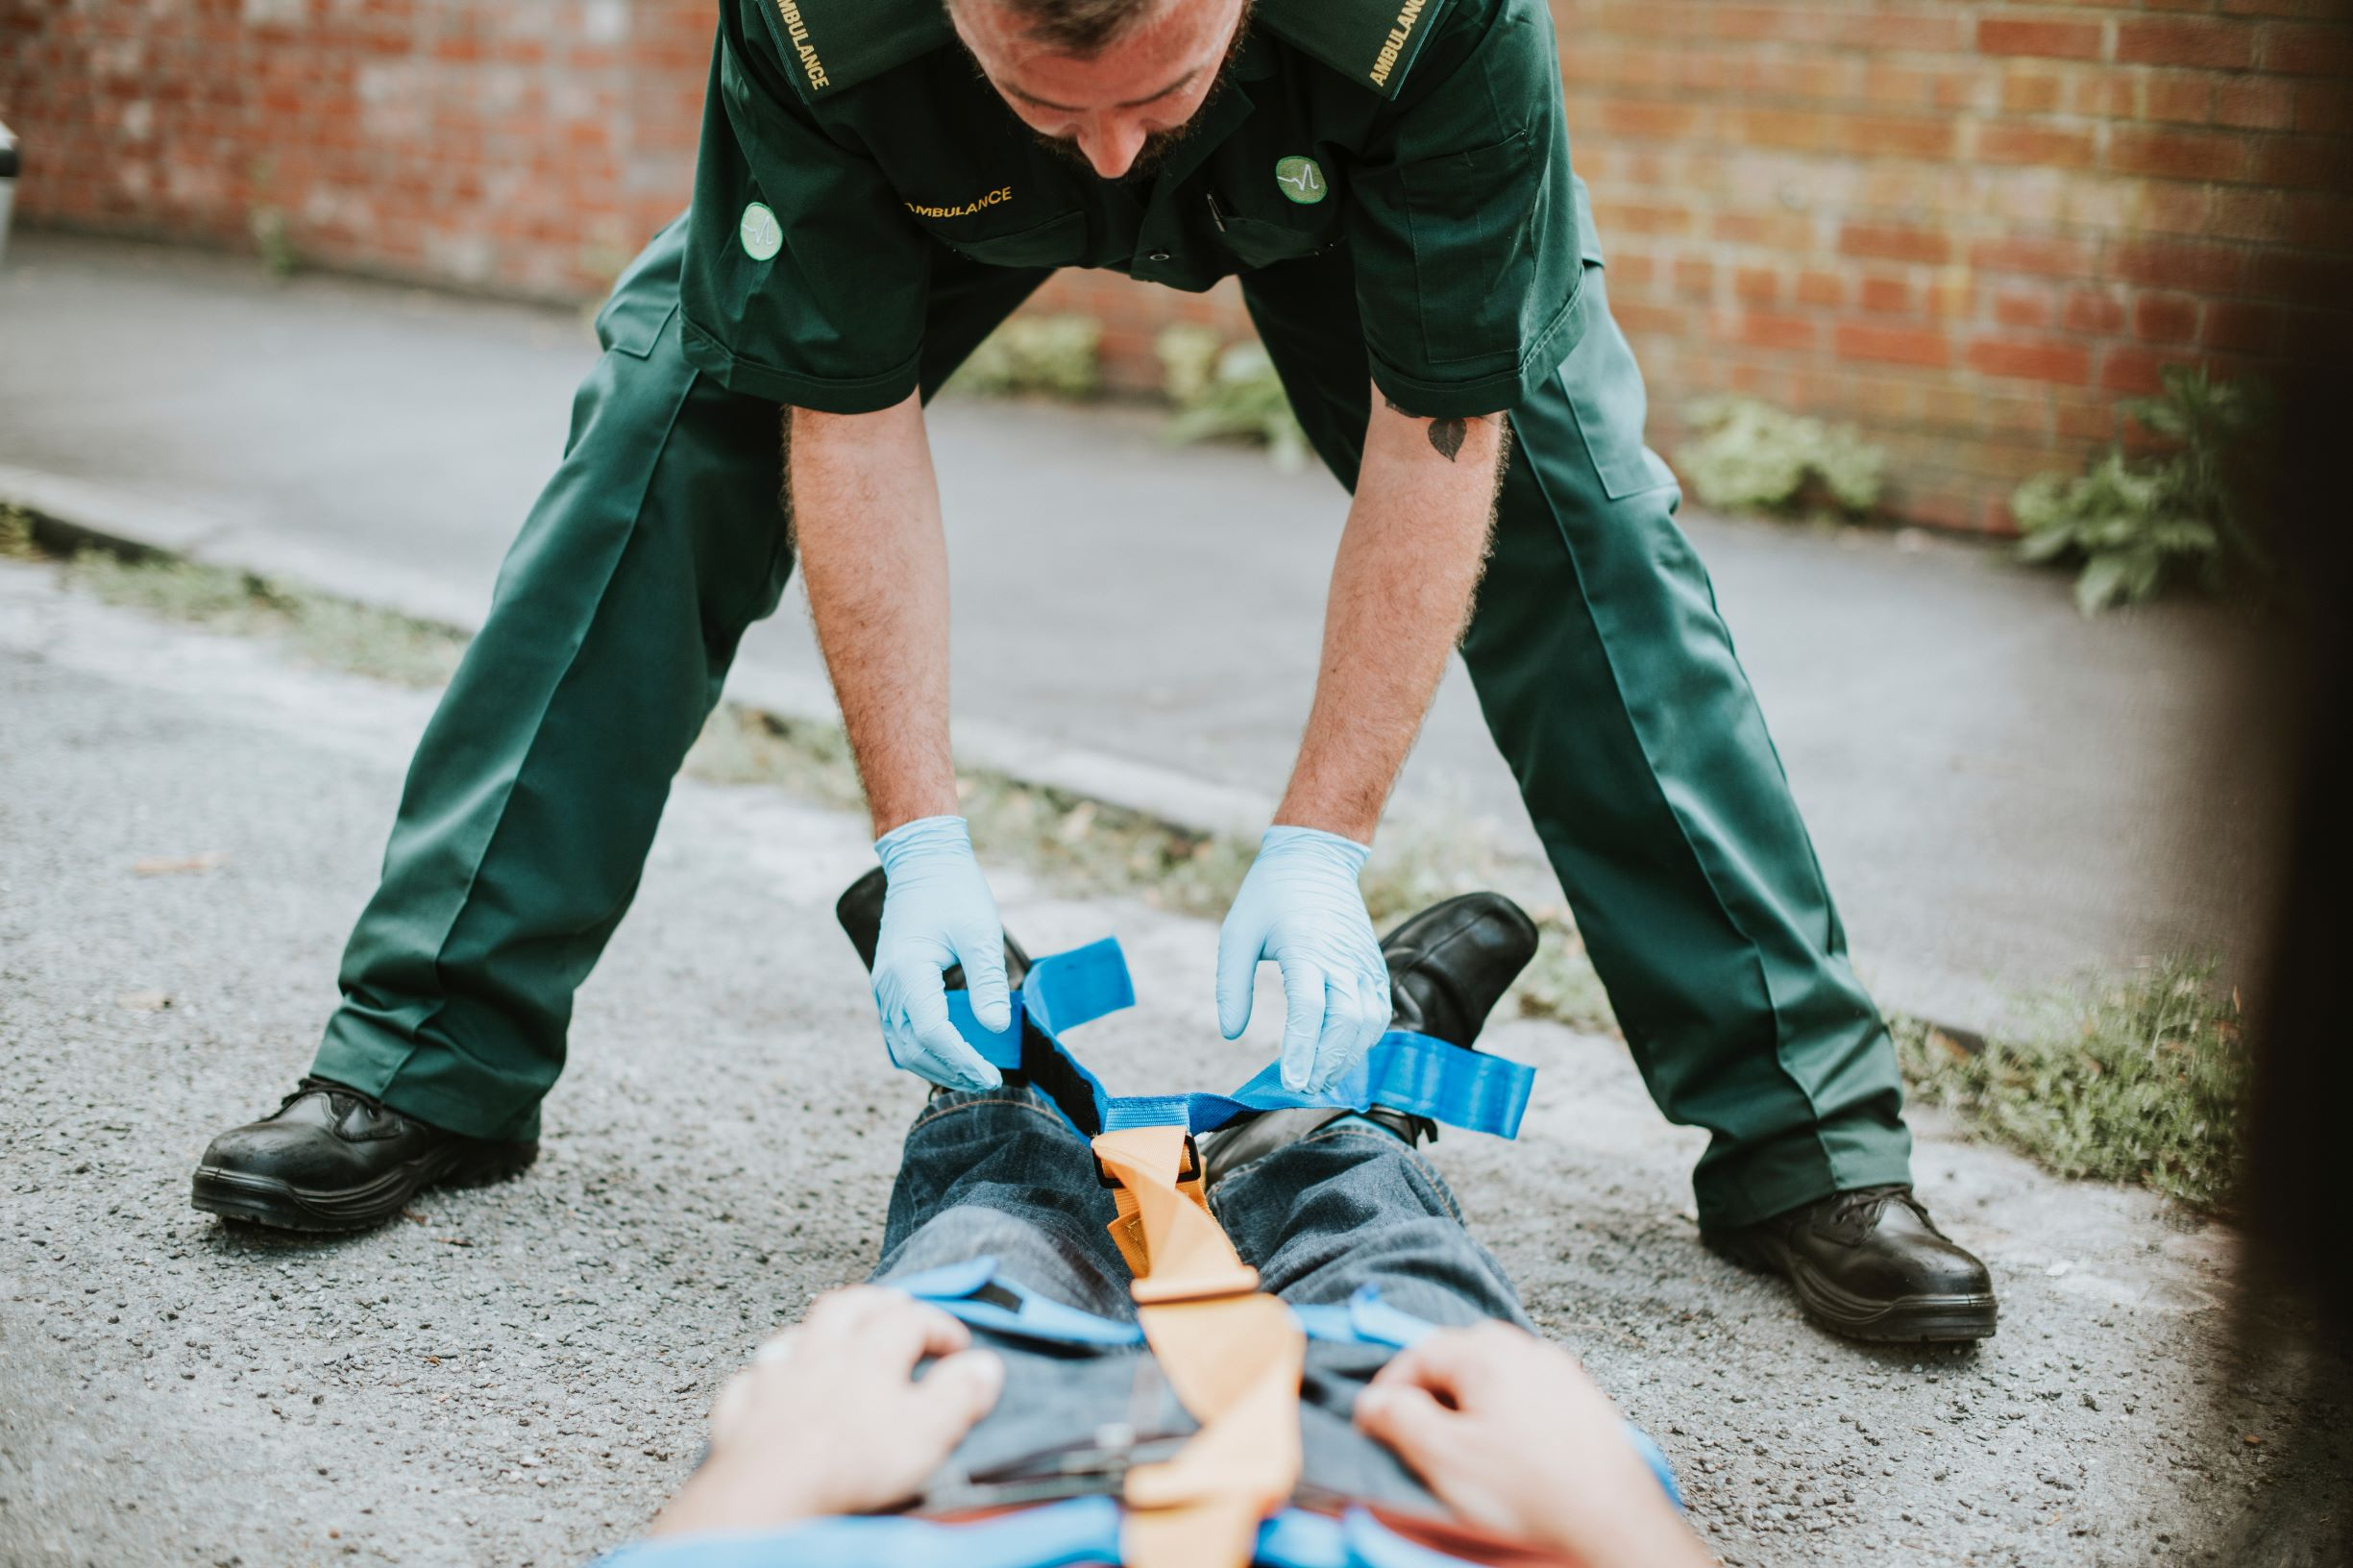 first aid officer